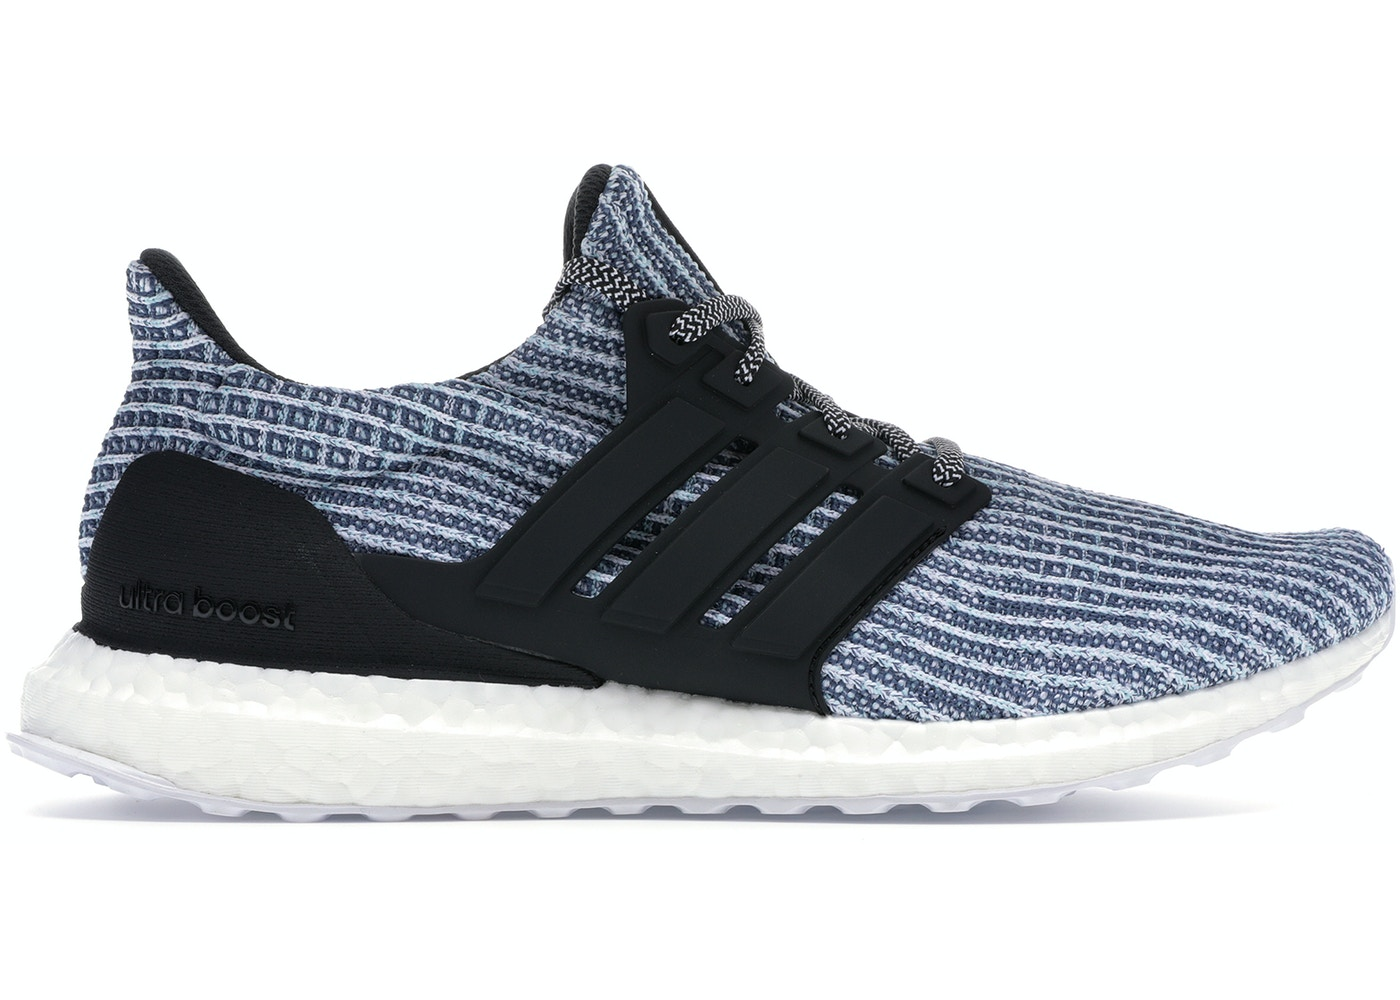 new products 6fc0d 049ed adidas Ultra Boost 4.0 Parley Carbon Blue Spirit